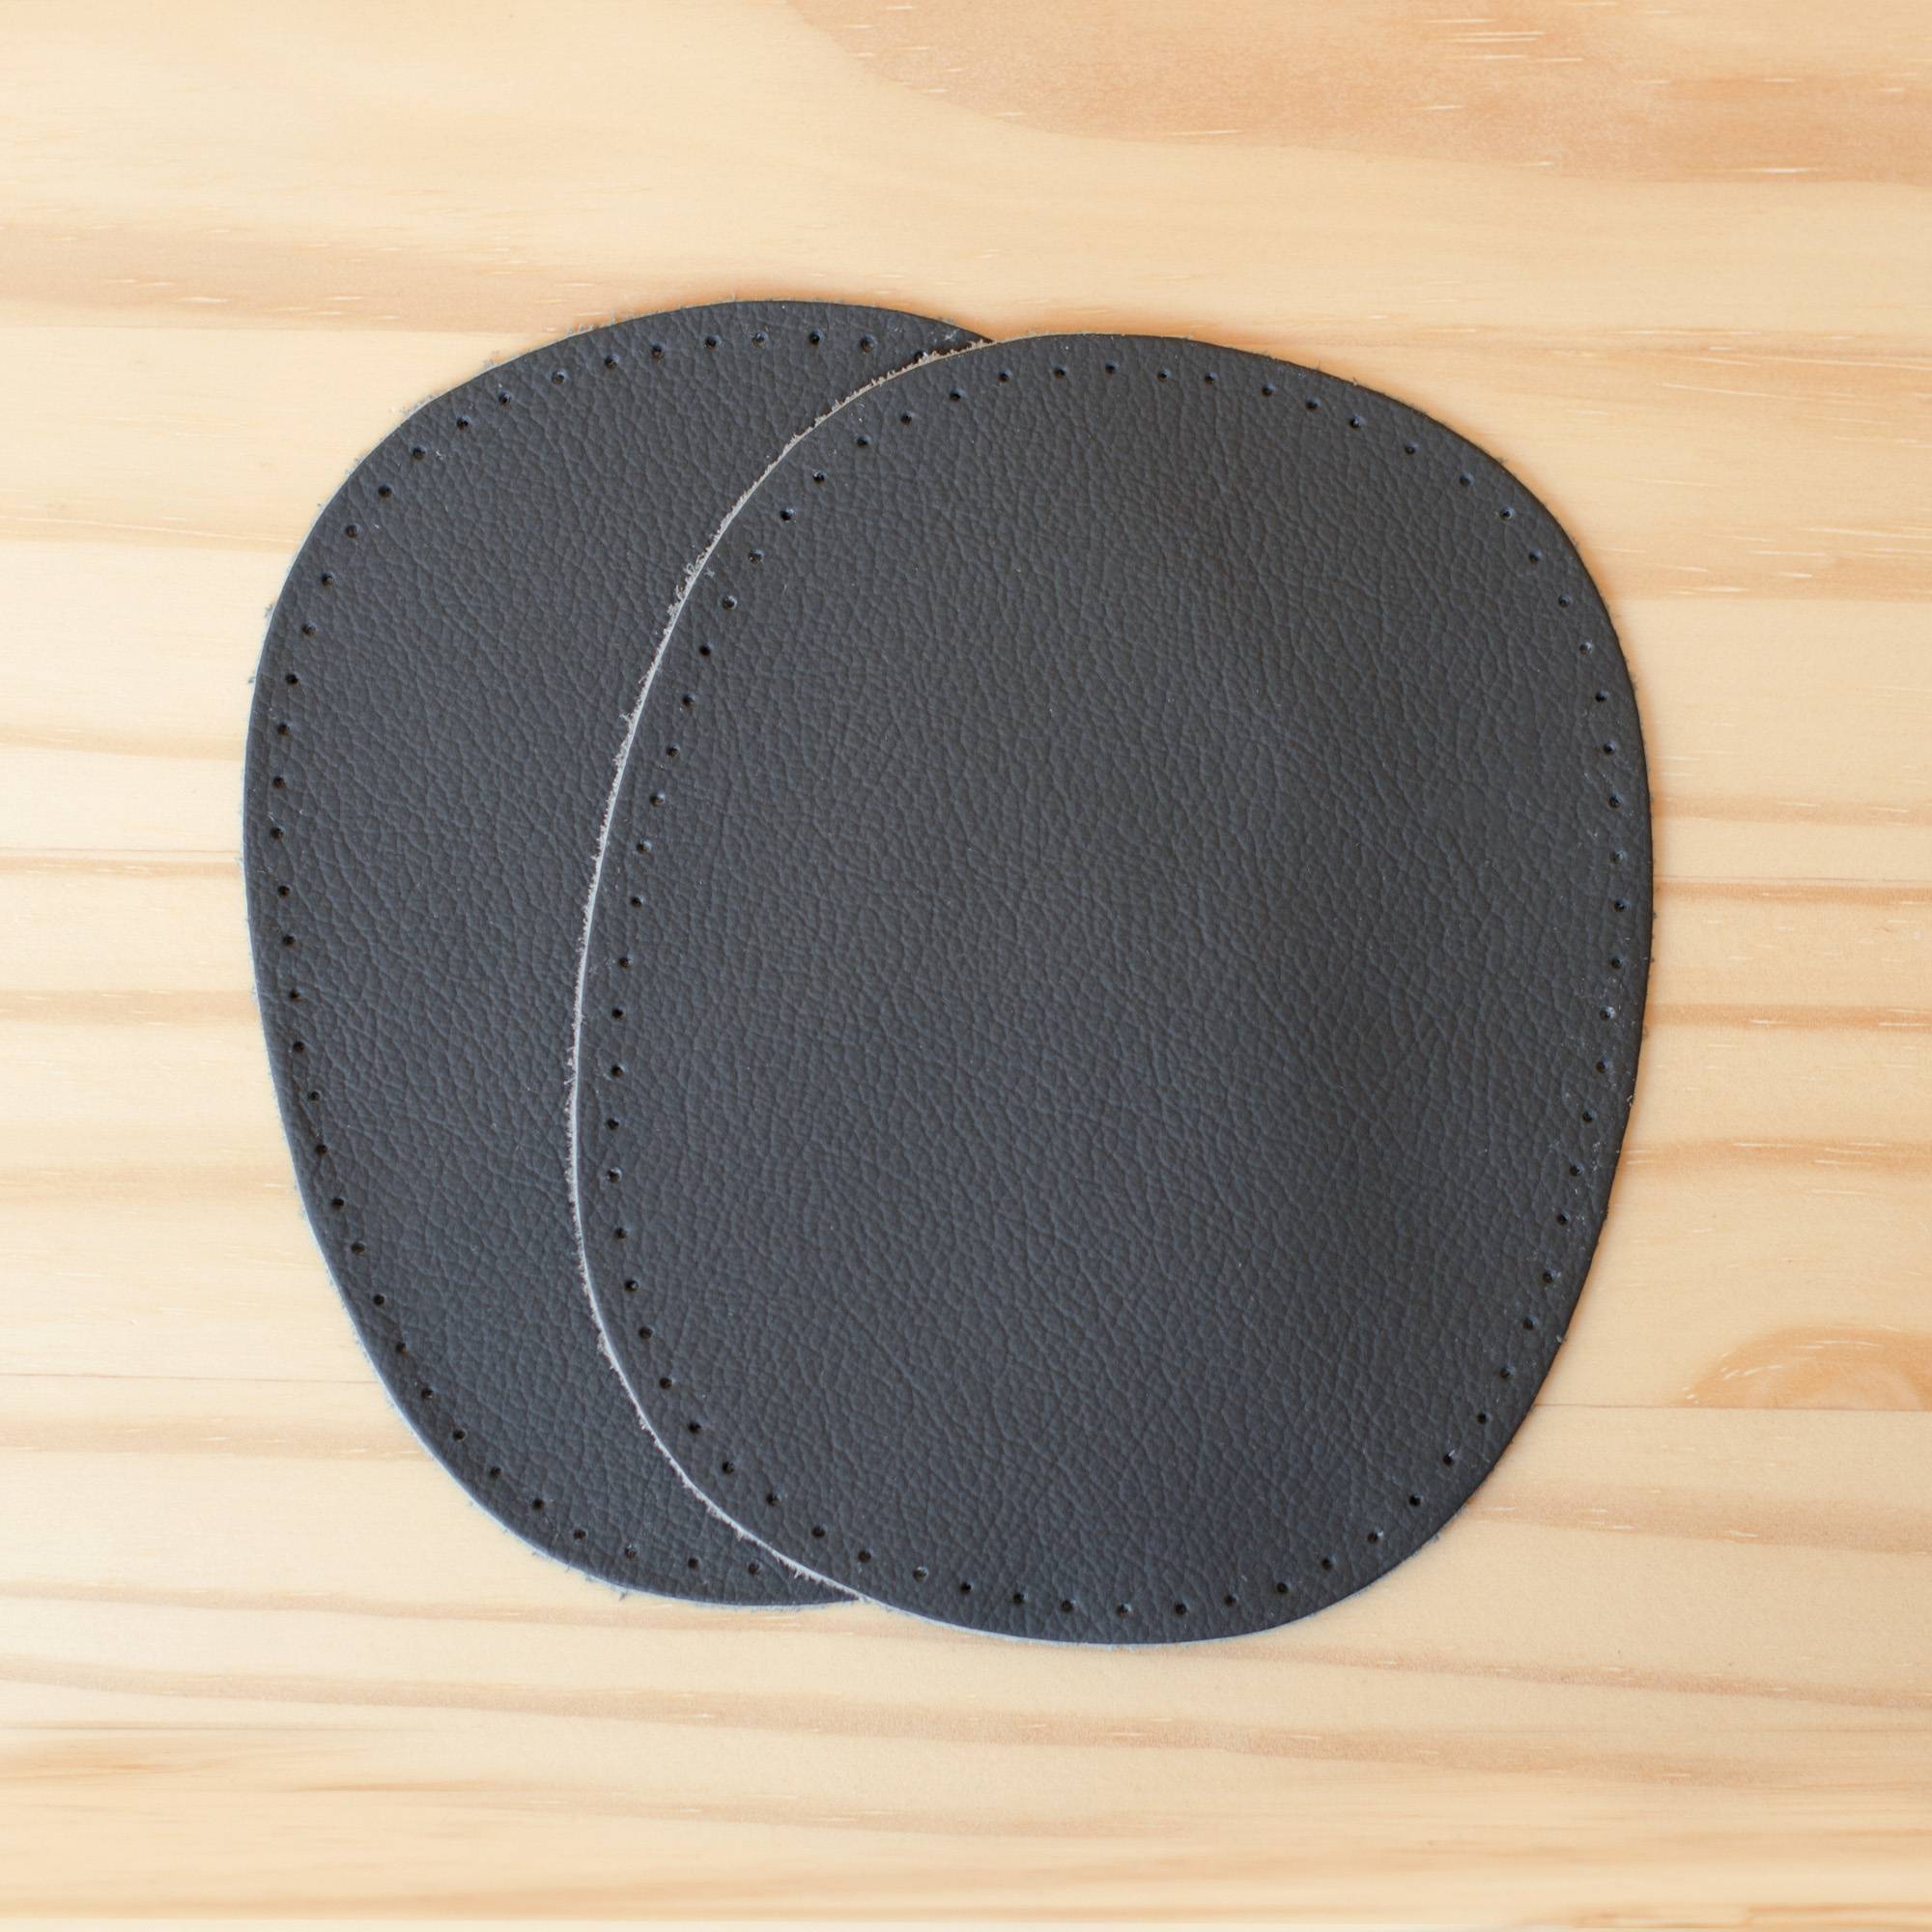 Prym : Grey Leather Patches : 2 count